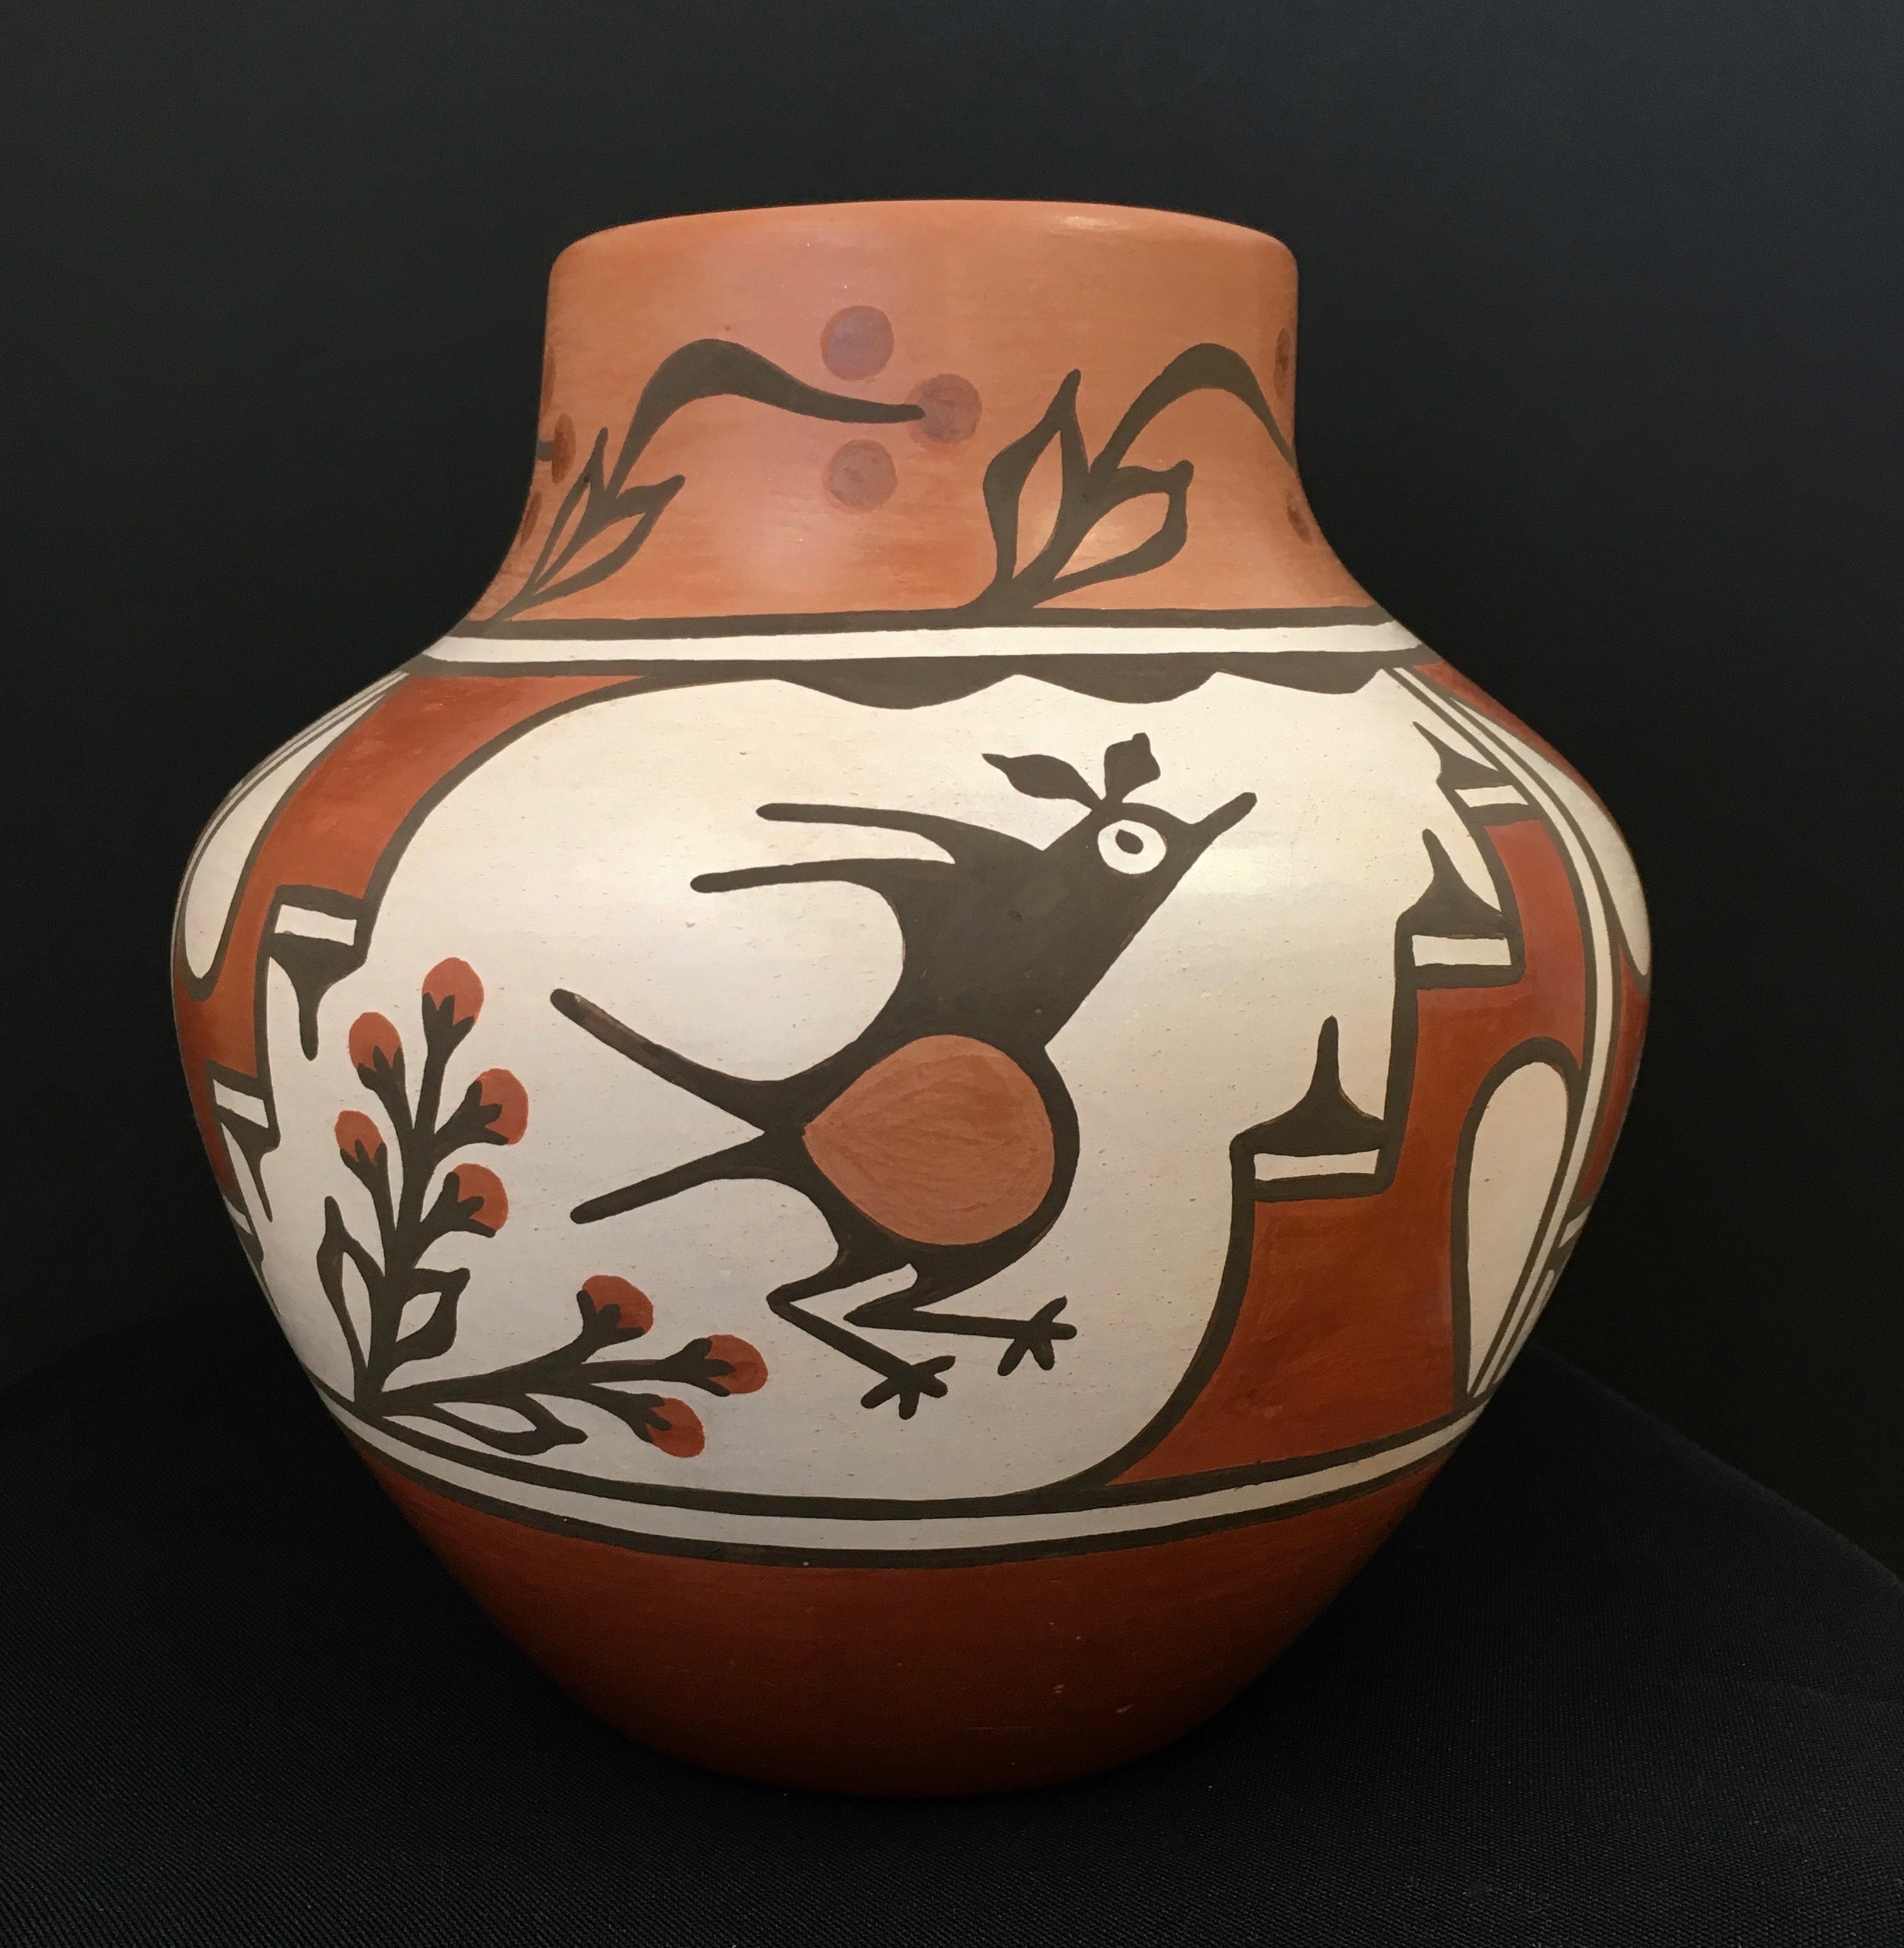 Zia Polychrome Pottery Jar, by Ruby Panana at Raven Makes Gallery in Sisters, Oregon